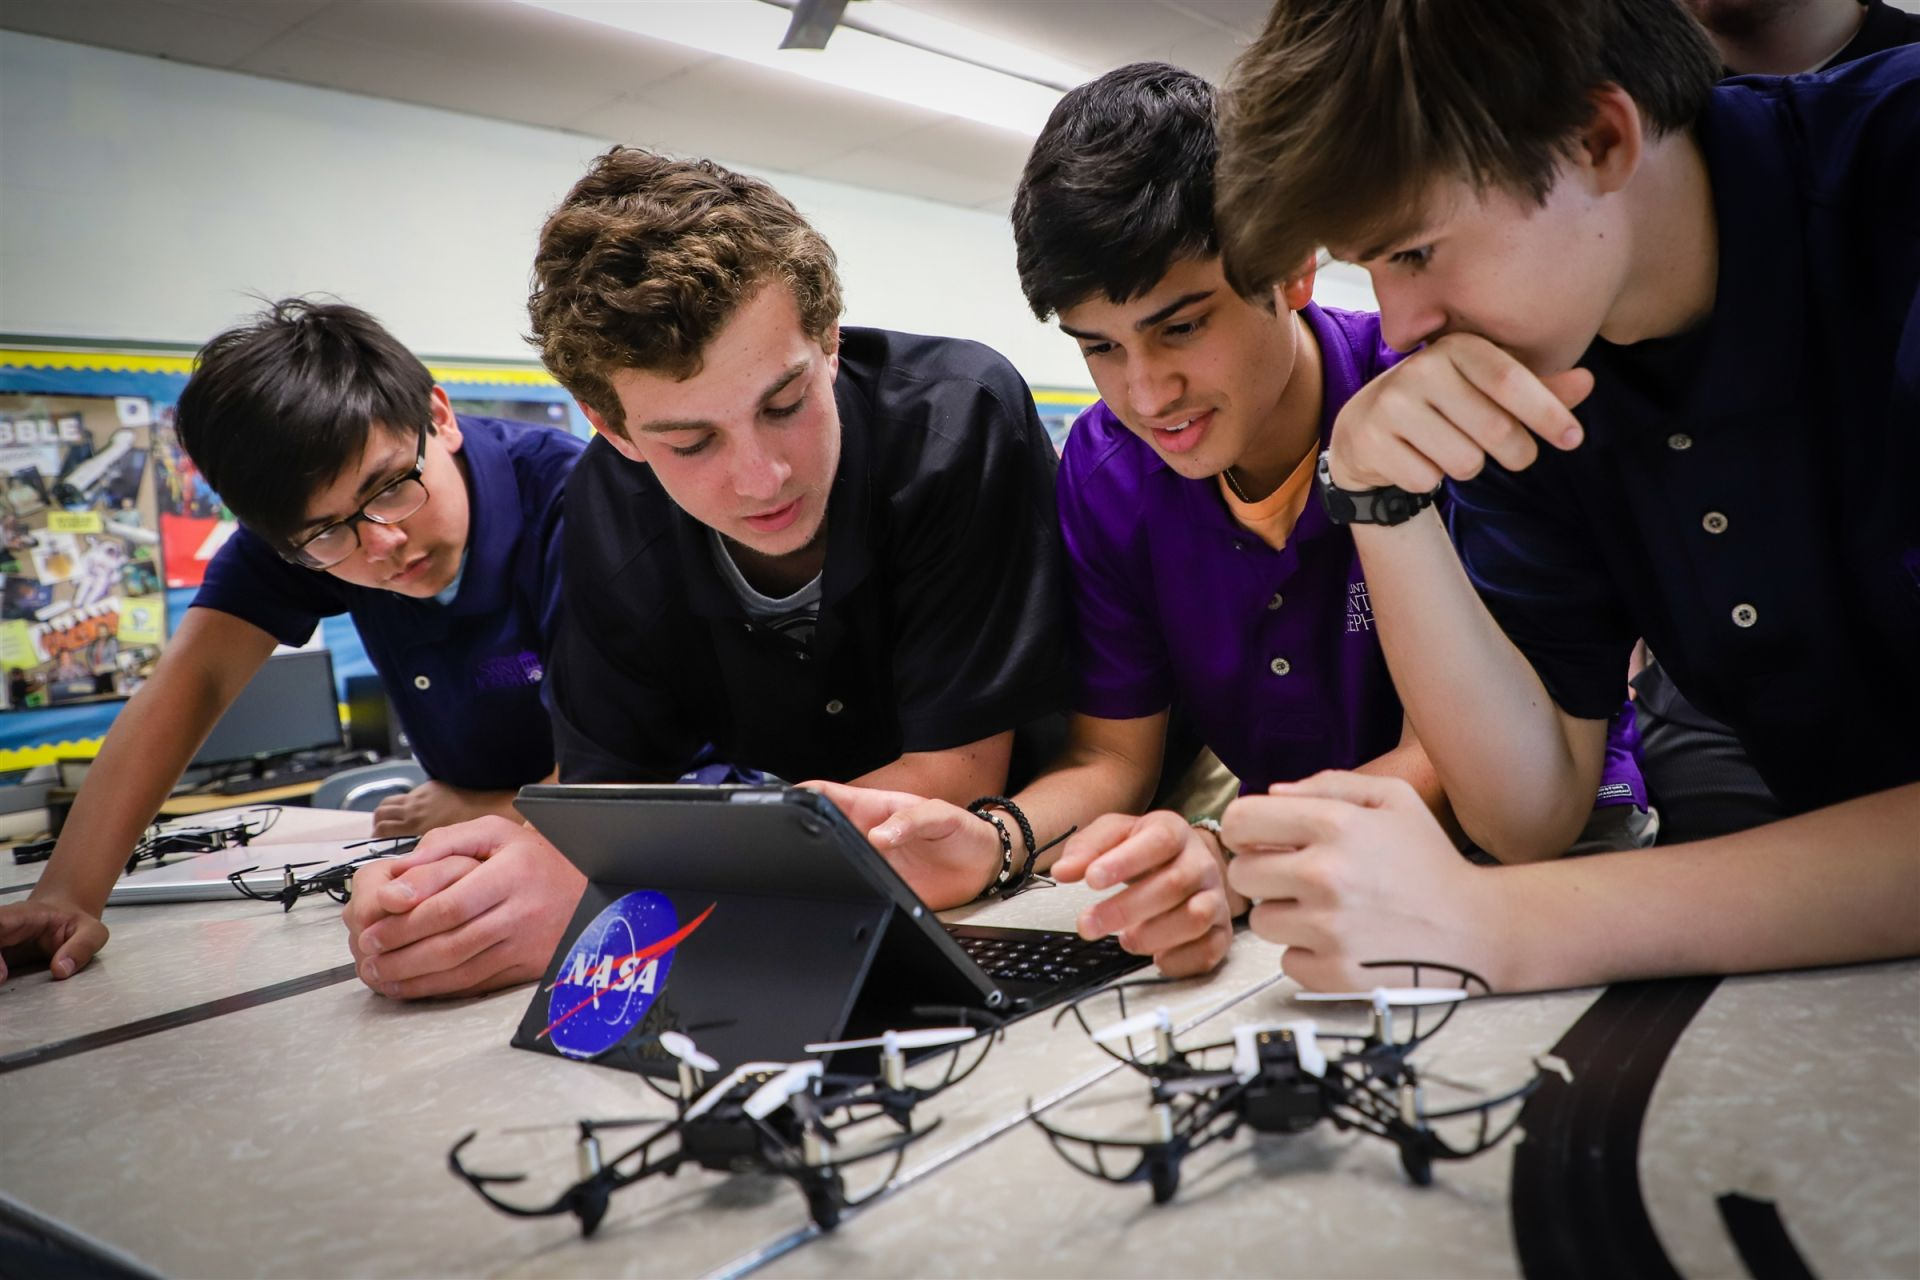 Students program drones at summer STEM camp.